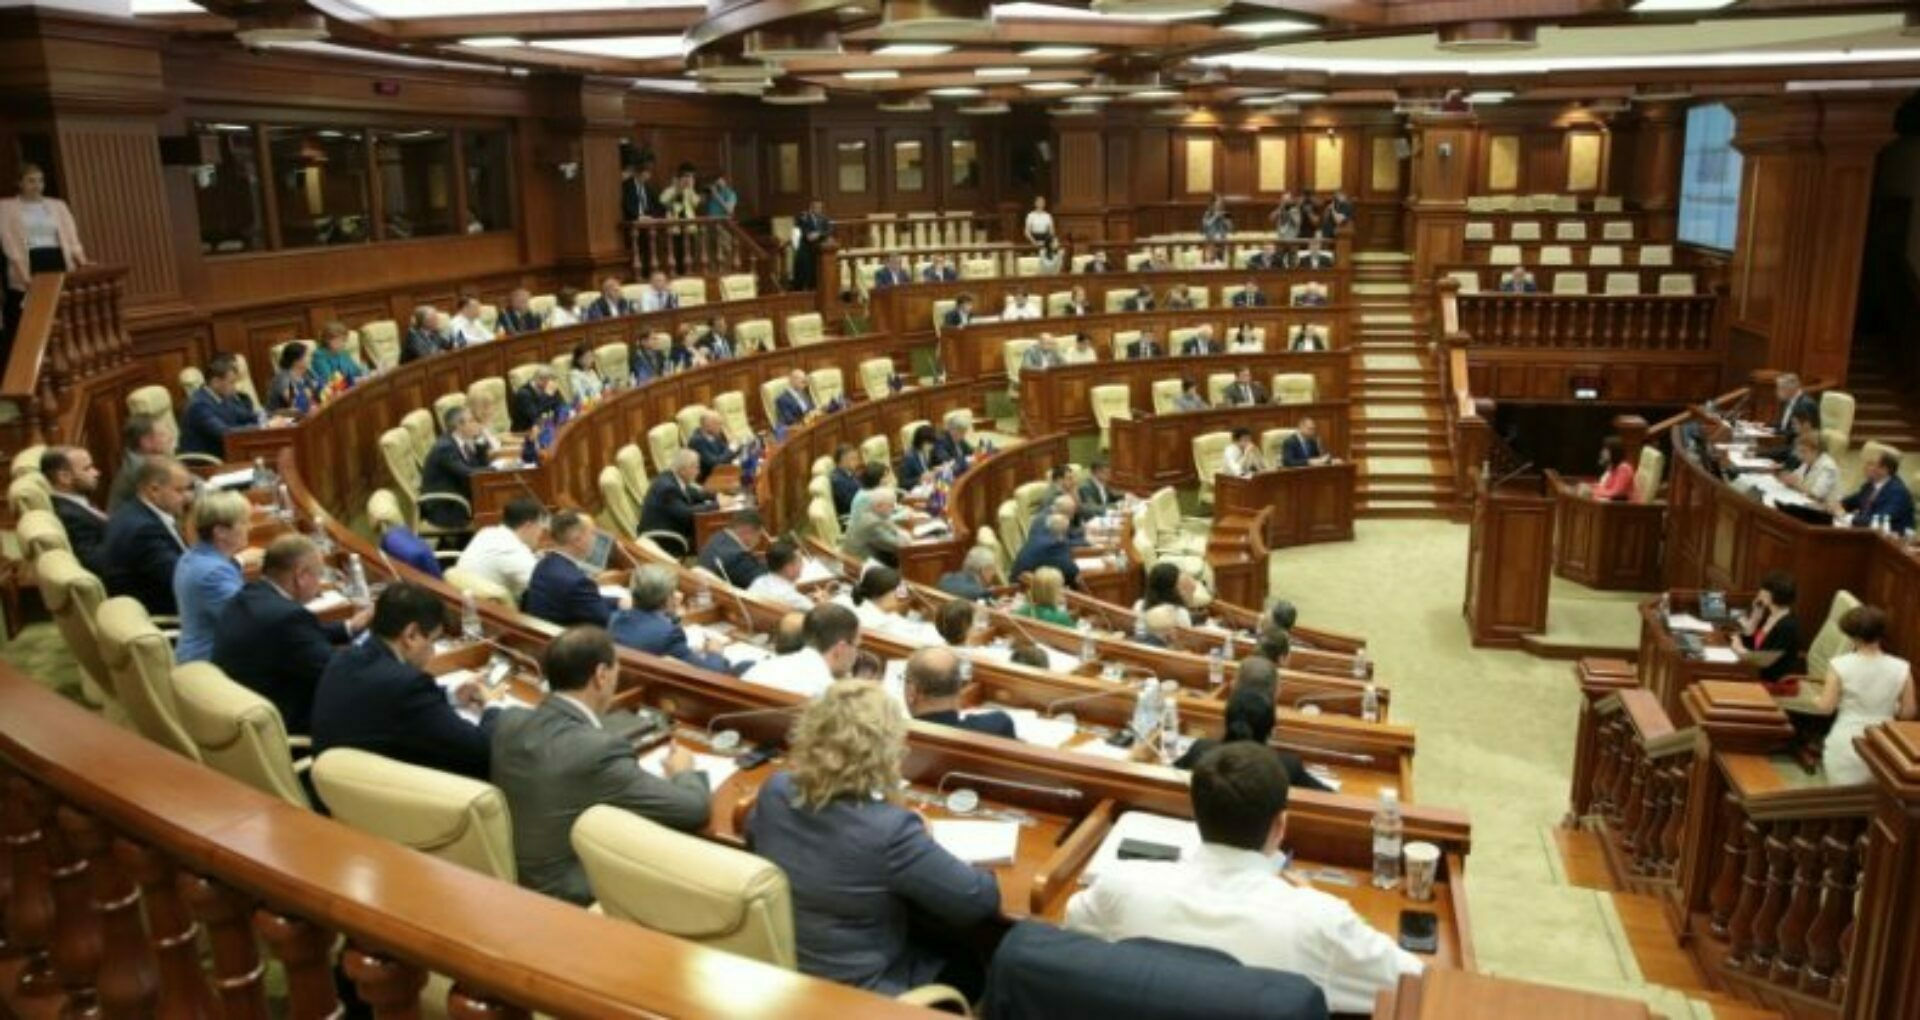 The Parliament Will Have a New Commission that Will Investigate the 2010-2012 Raider Attacks in Moldova